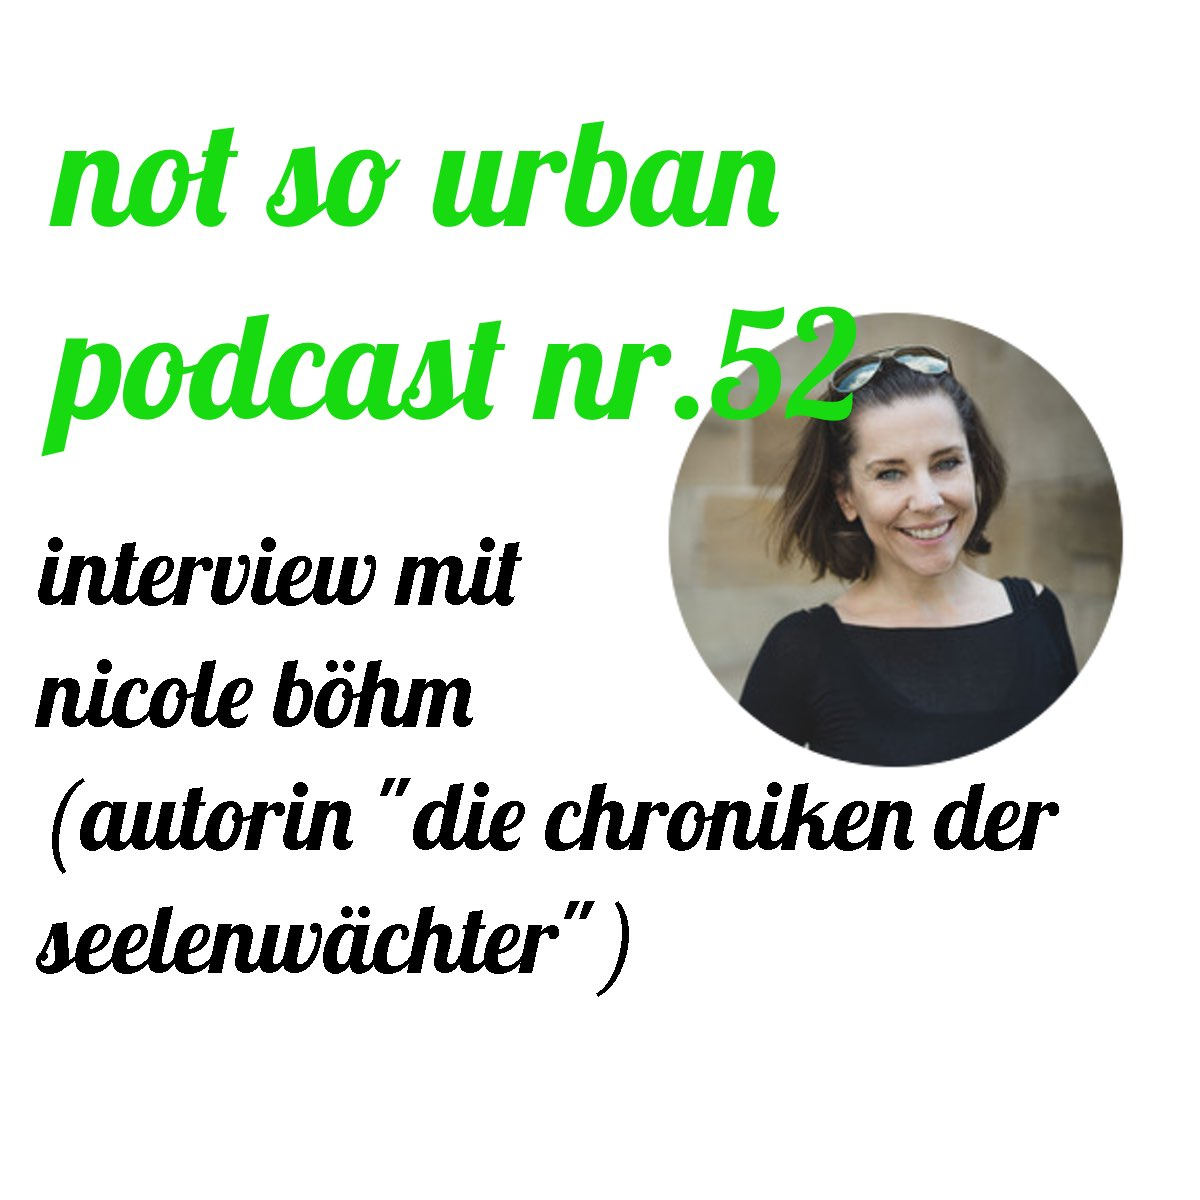 not so urban Podcast Nr. 52 mit Nicole Böhm (Coverbild). Autorin (Interviewer: Andreas Allgeyer https://notsourban.com)